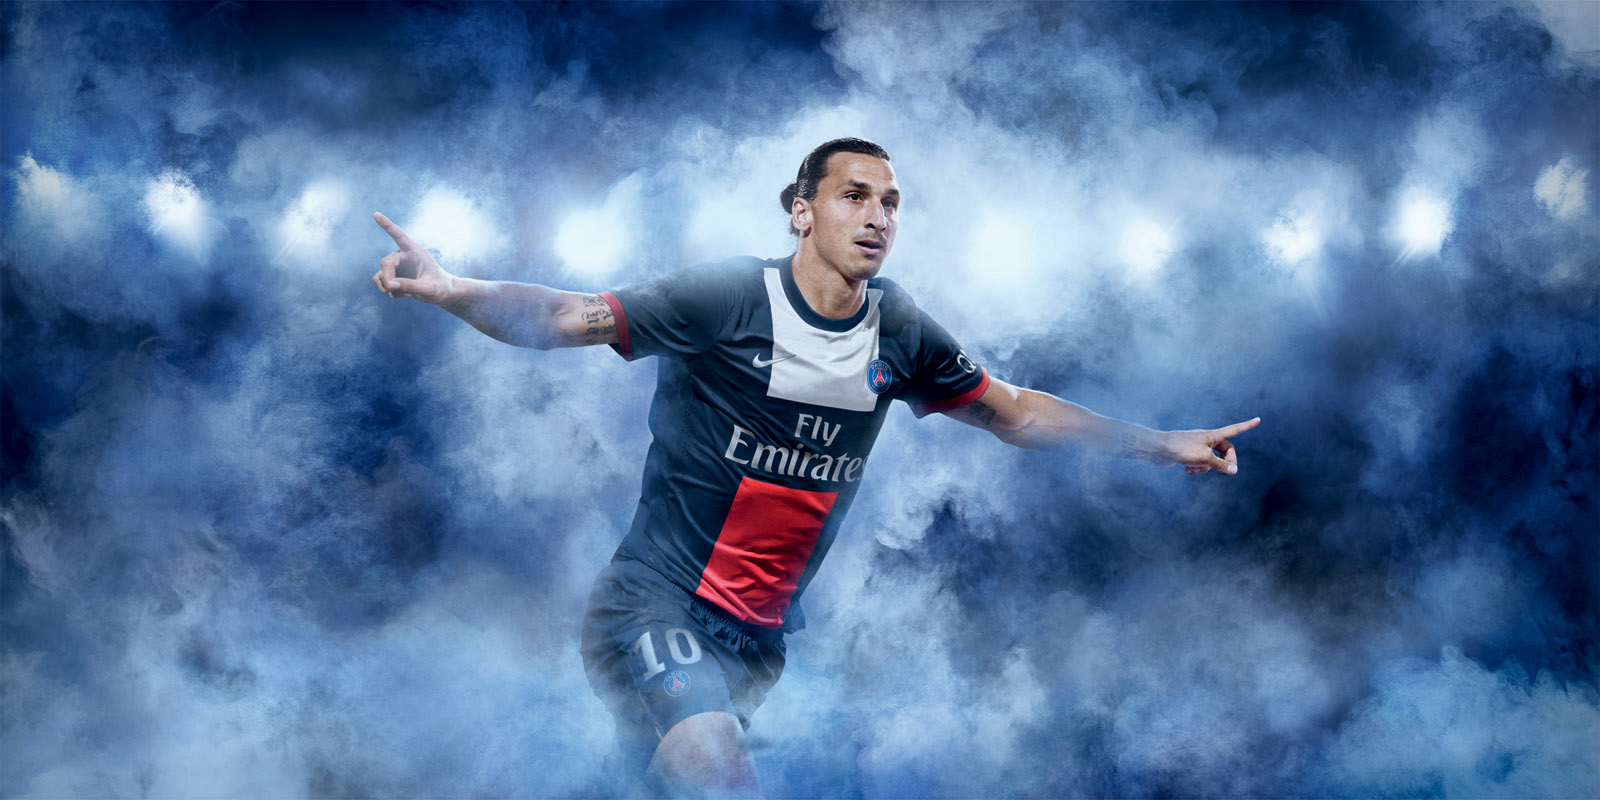 PSG: PSG 13-14 (2013-14) Home And Away Kits Released